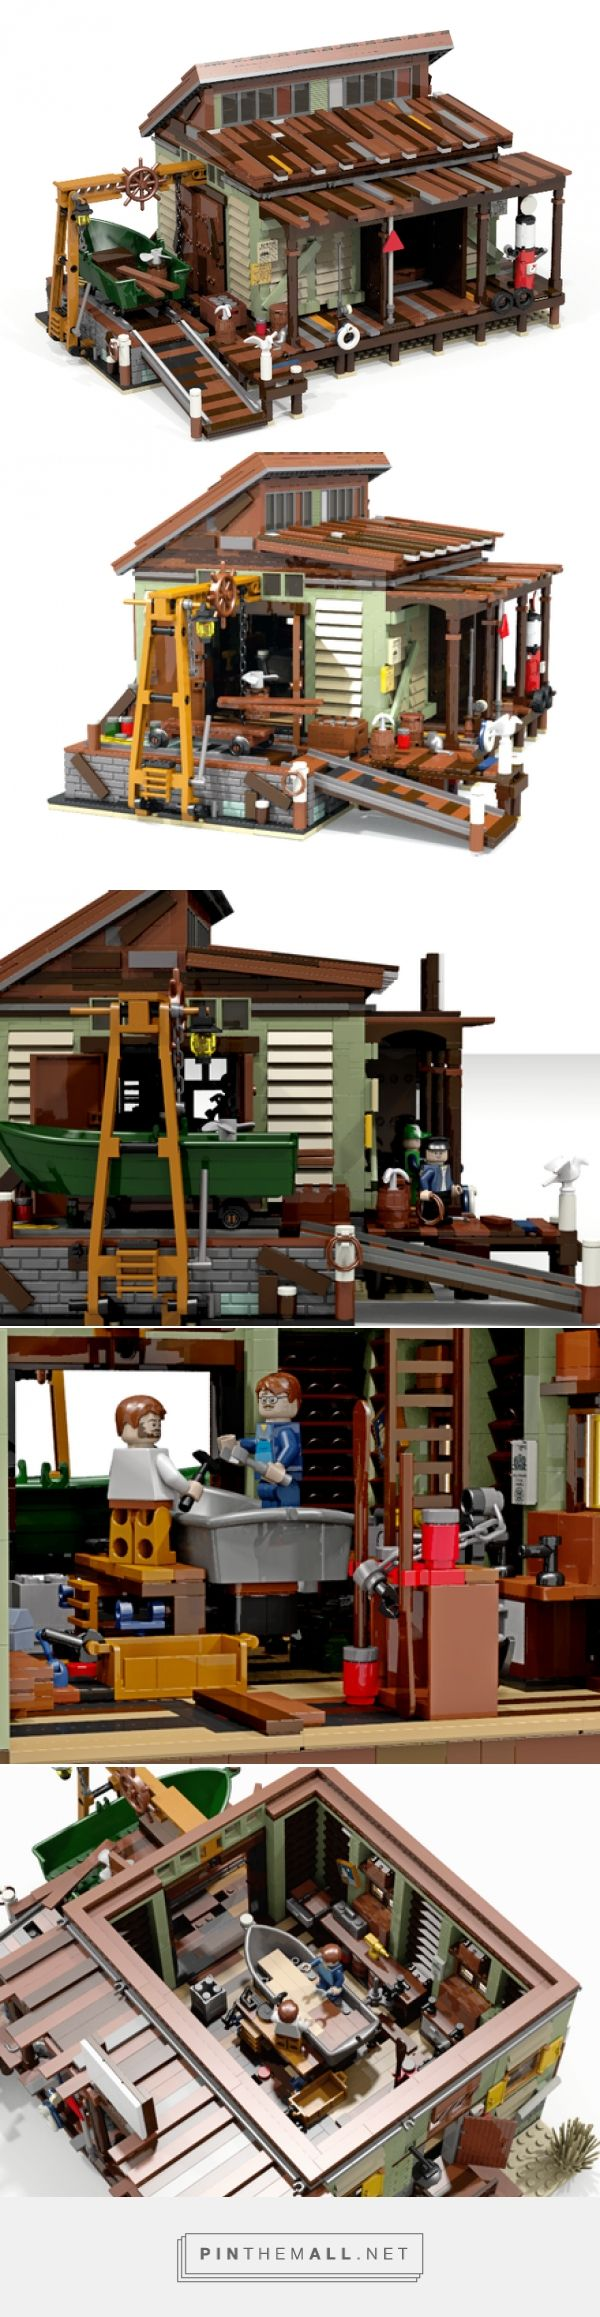 LEGO Ideas - Boat Repair Shop - created via https://pinthemall.net